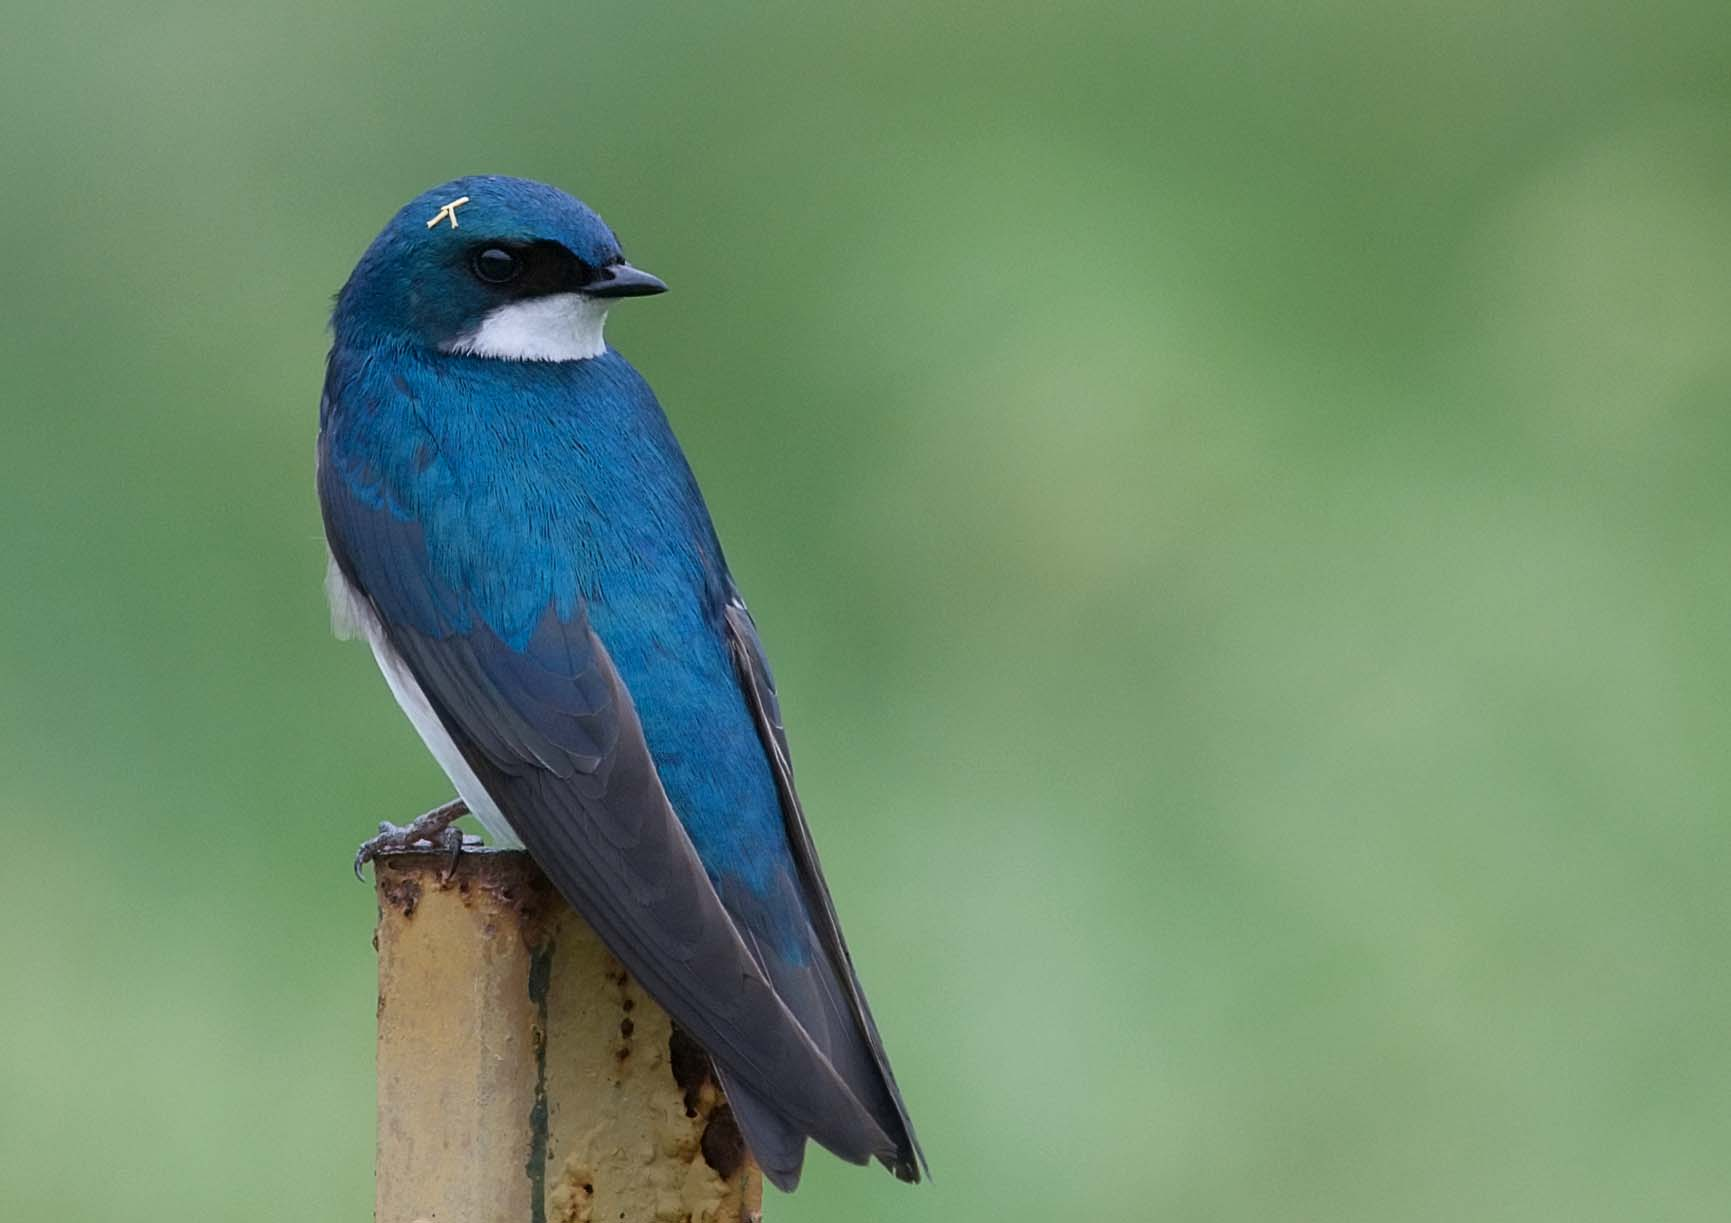 - Tree Swallow (Tachycineta bicolor)Tree Swallows live mostly in open areas near bodies of water. They eat insects, invertebrates, and berries. They make a high-pitched call that is made up of a chirp, a whine, and a gurgle. Their wingspan is 11.8-13.8 in. and they can weigh 0.6-0.9 oz. They are protected on the US Migratory Bird lists.Photo Credits: Kelly Colgan Azar